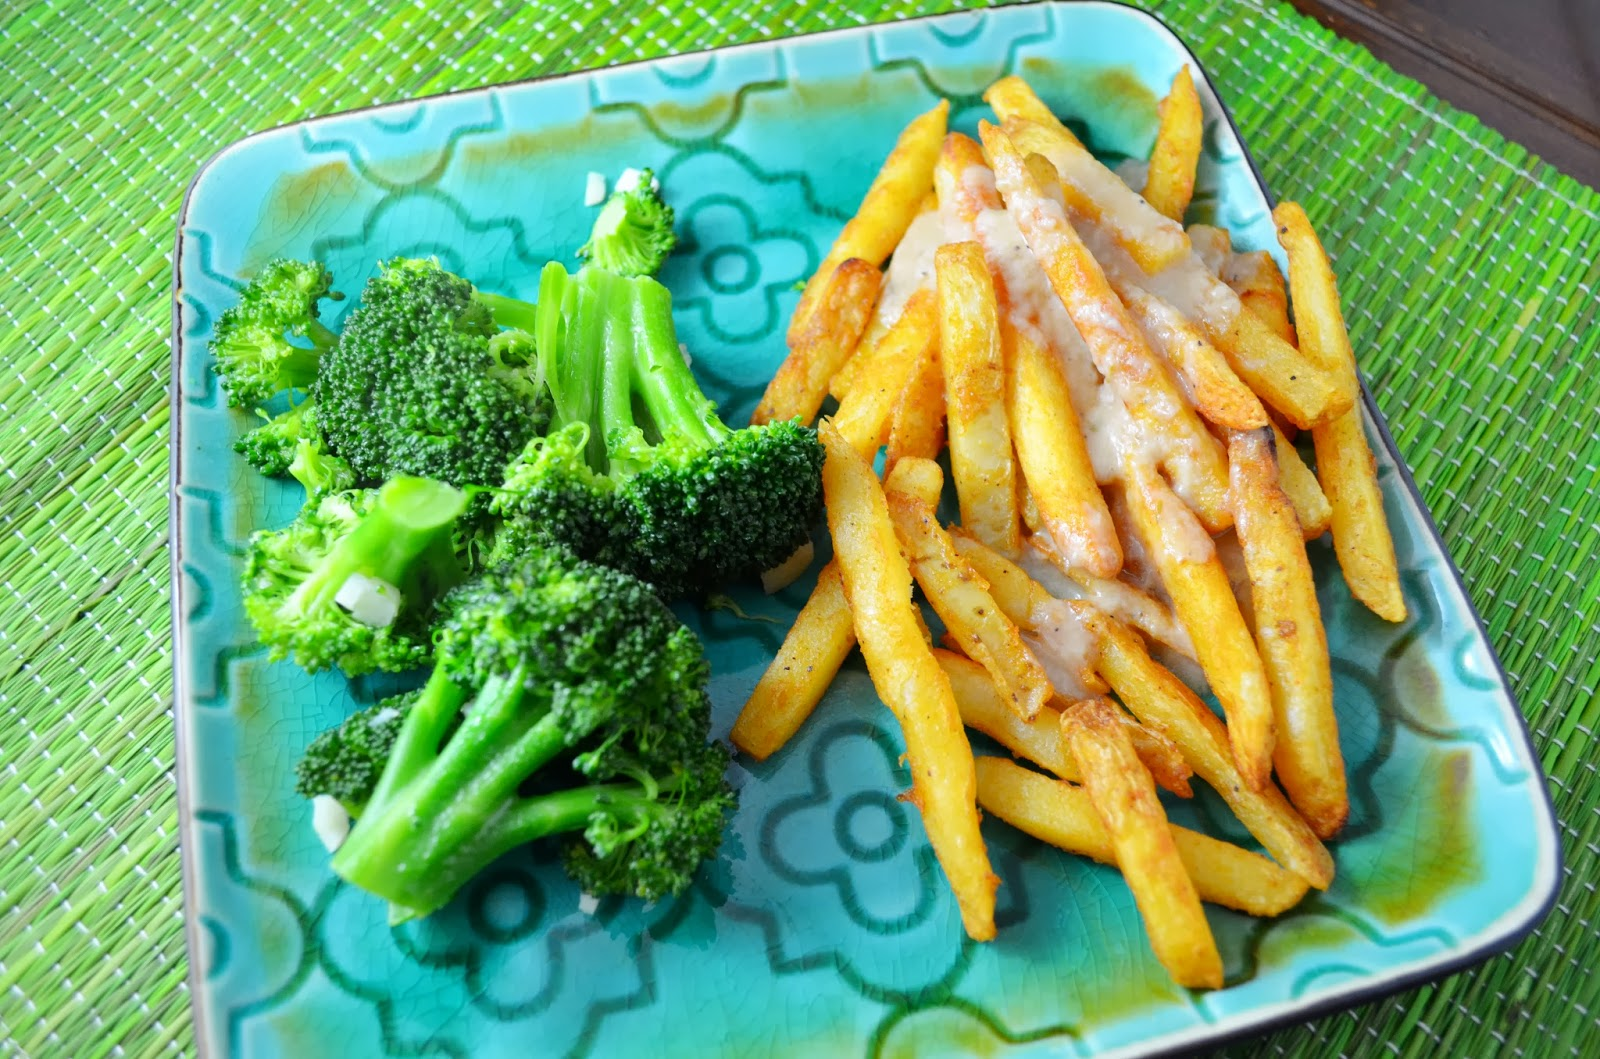 broccoli-and-fries-with-gravy